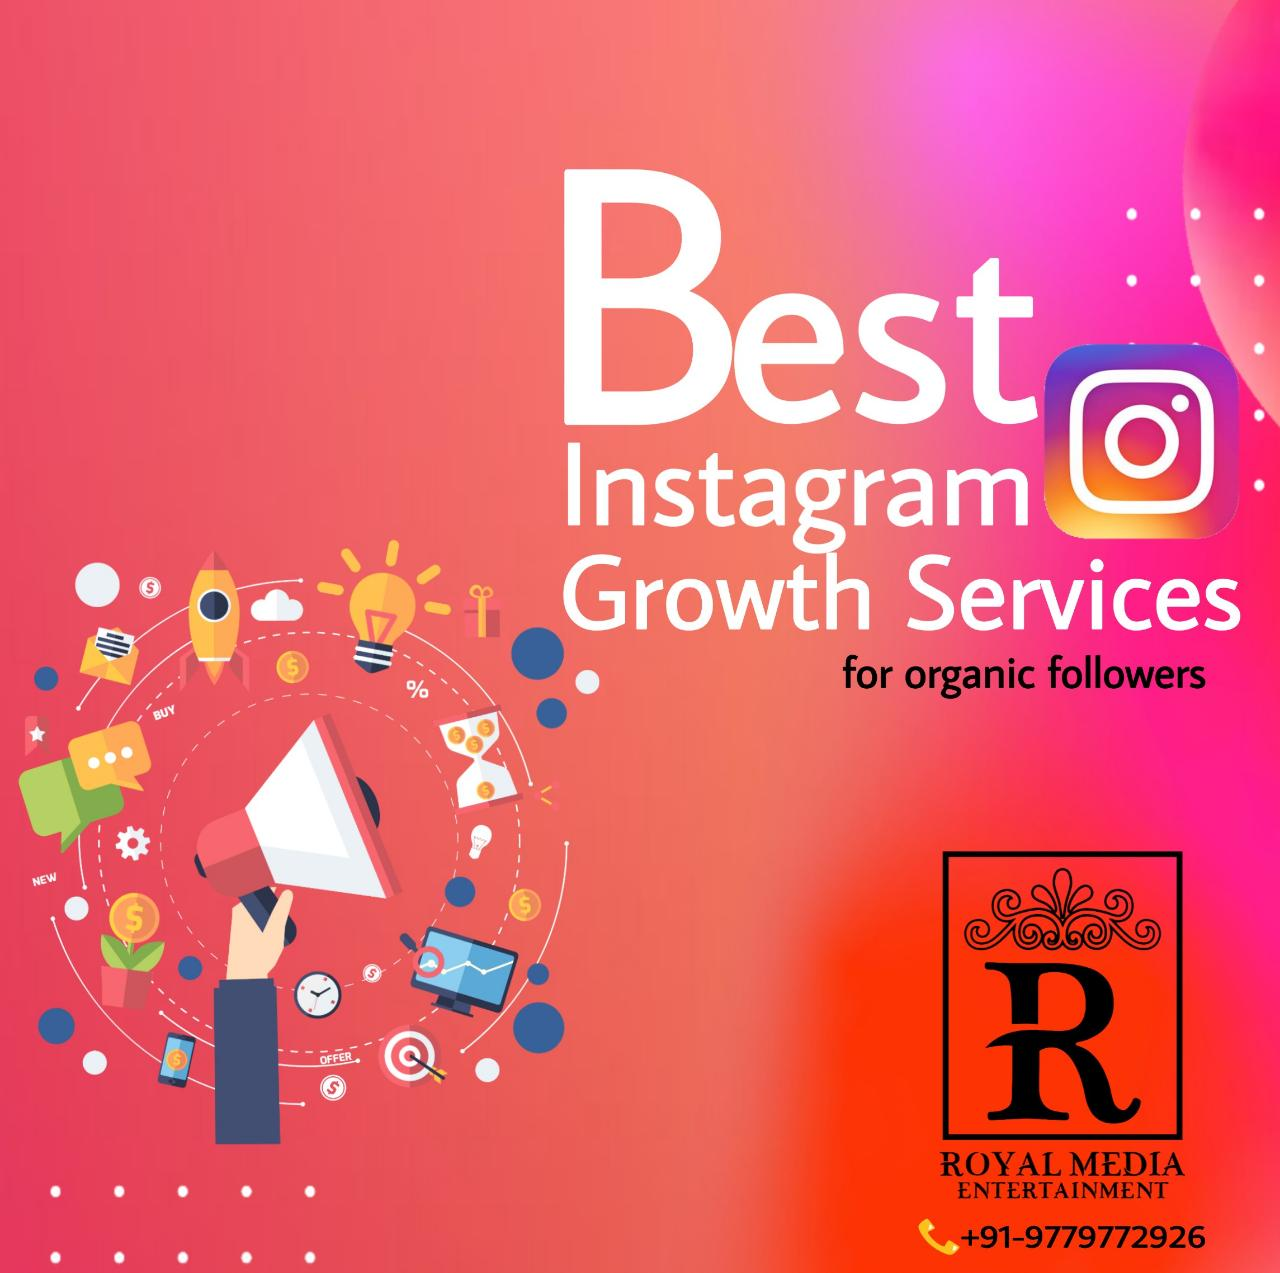 Best Instagram Growth Services (2020)